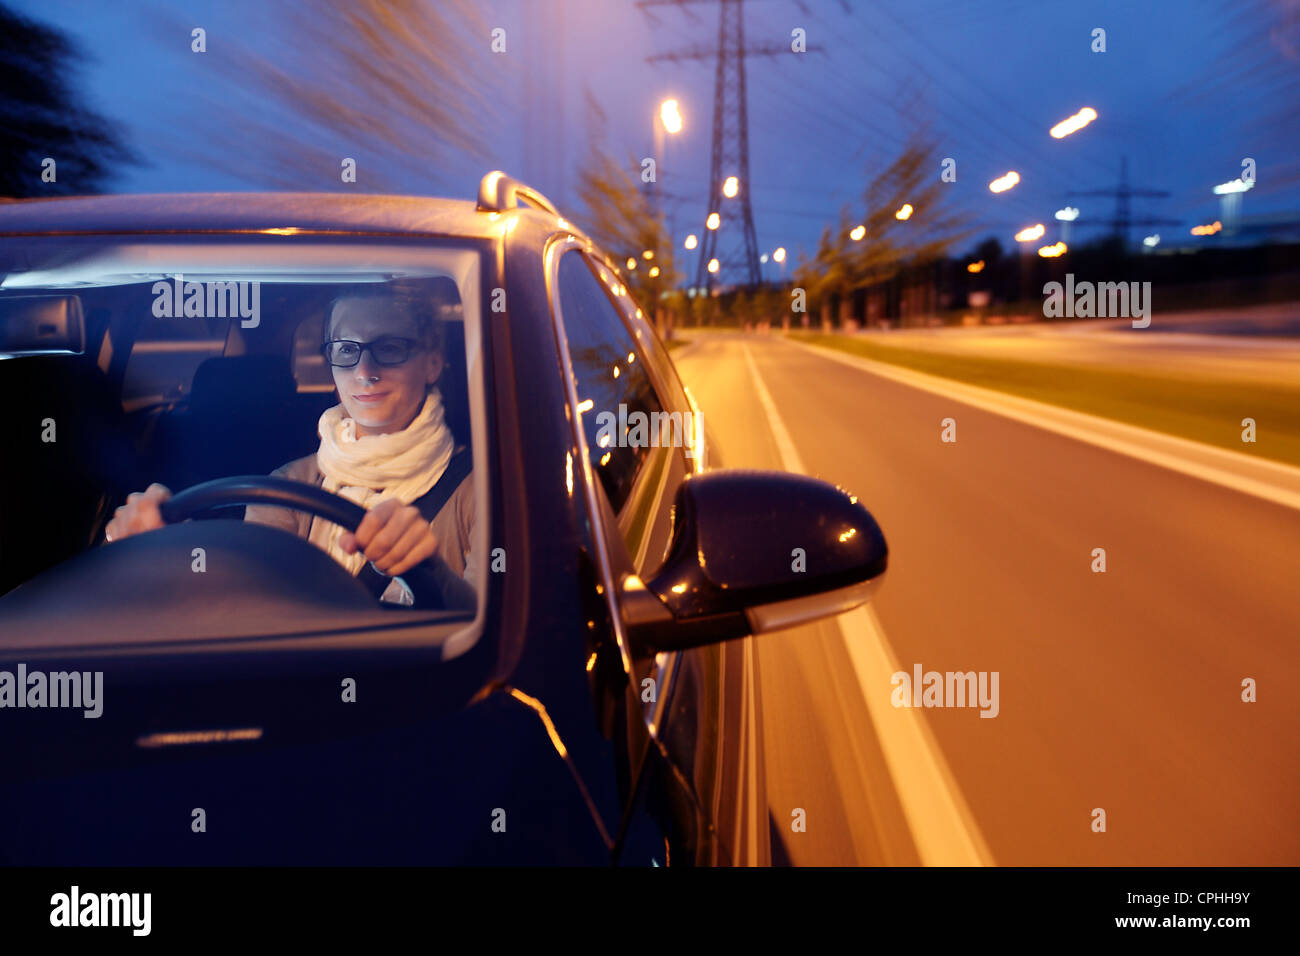 Young woman is driving a car at night, through a city, illuminated with streetlights. - Stock Image